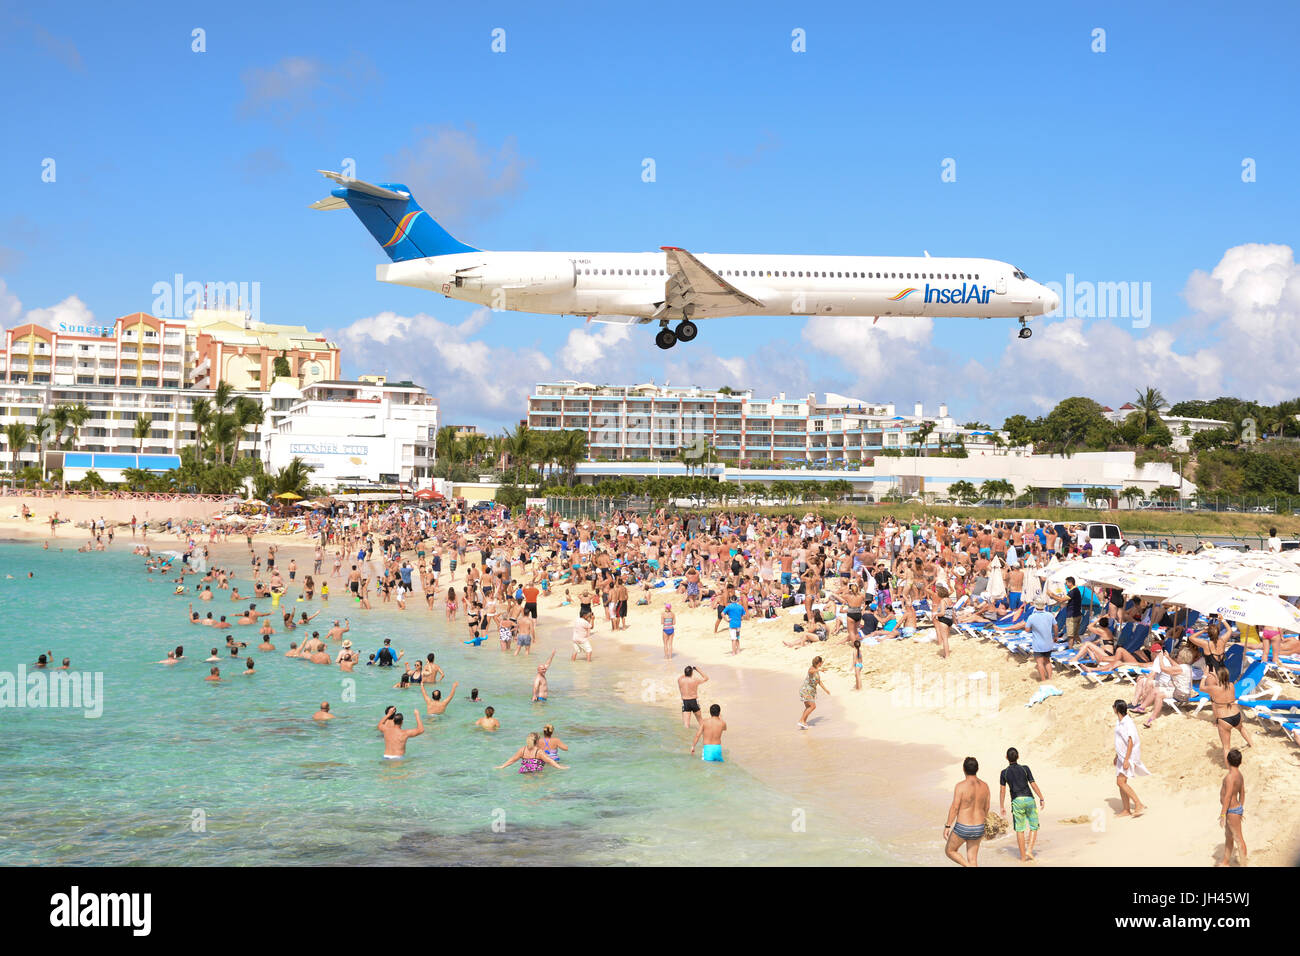 large aeroplane flies low over maho beach in st maarten, caribbean, known as airplane beach - Stock Image